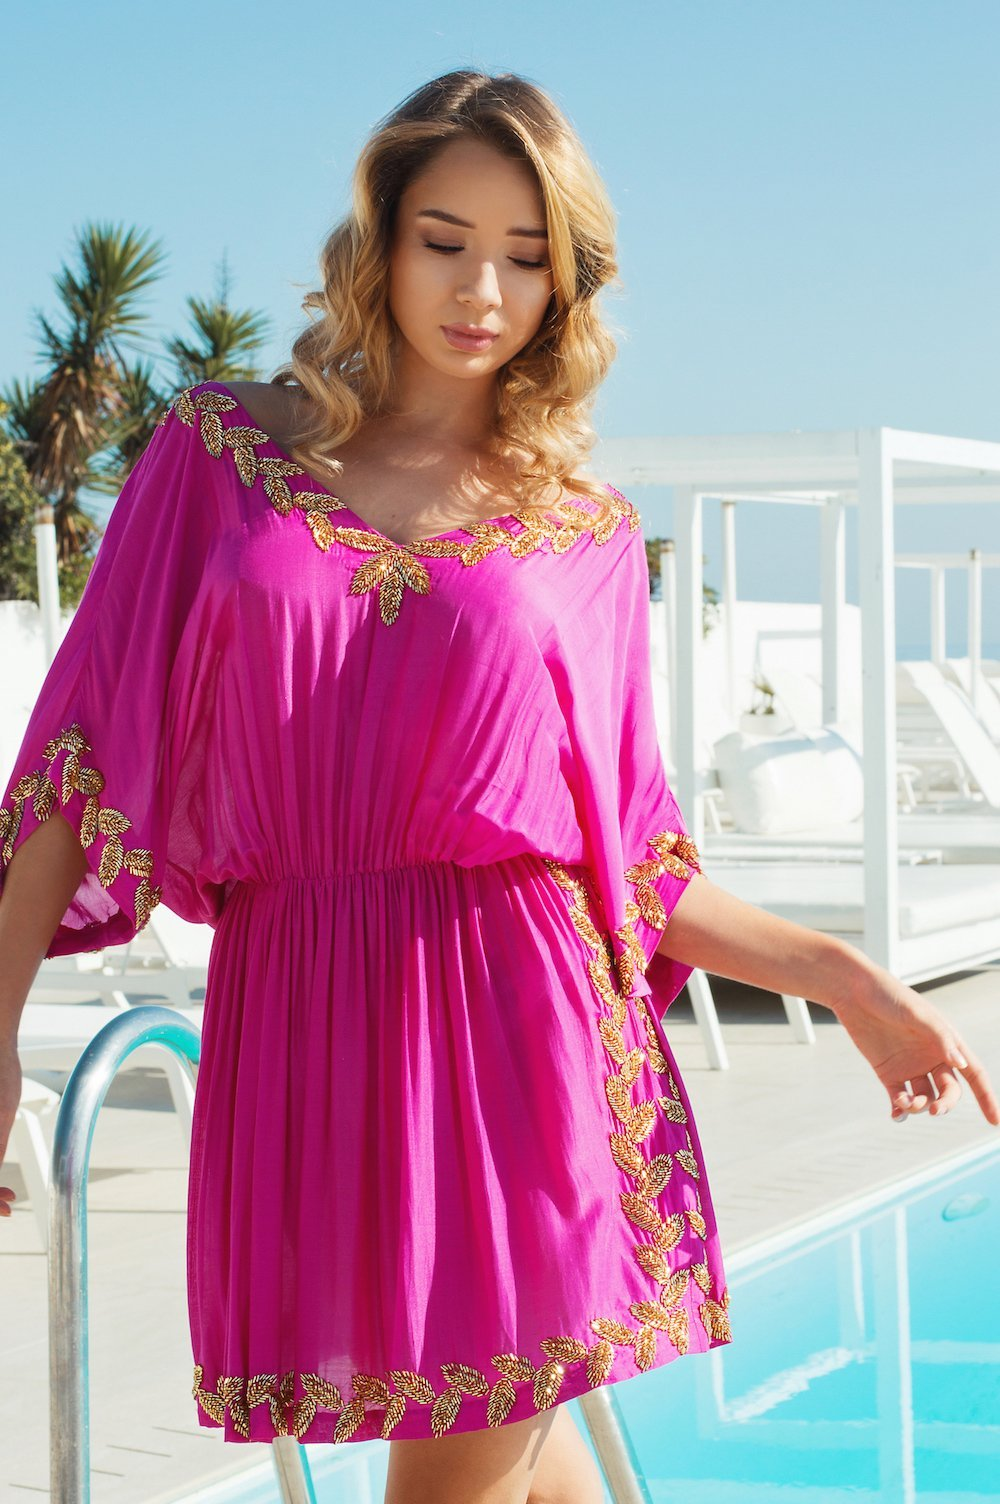 Aloha designer kaftan/dress (hand beaded) - Guilty Beach